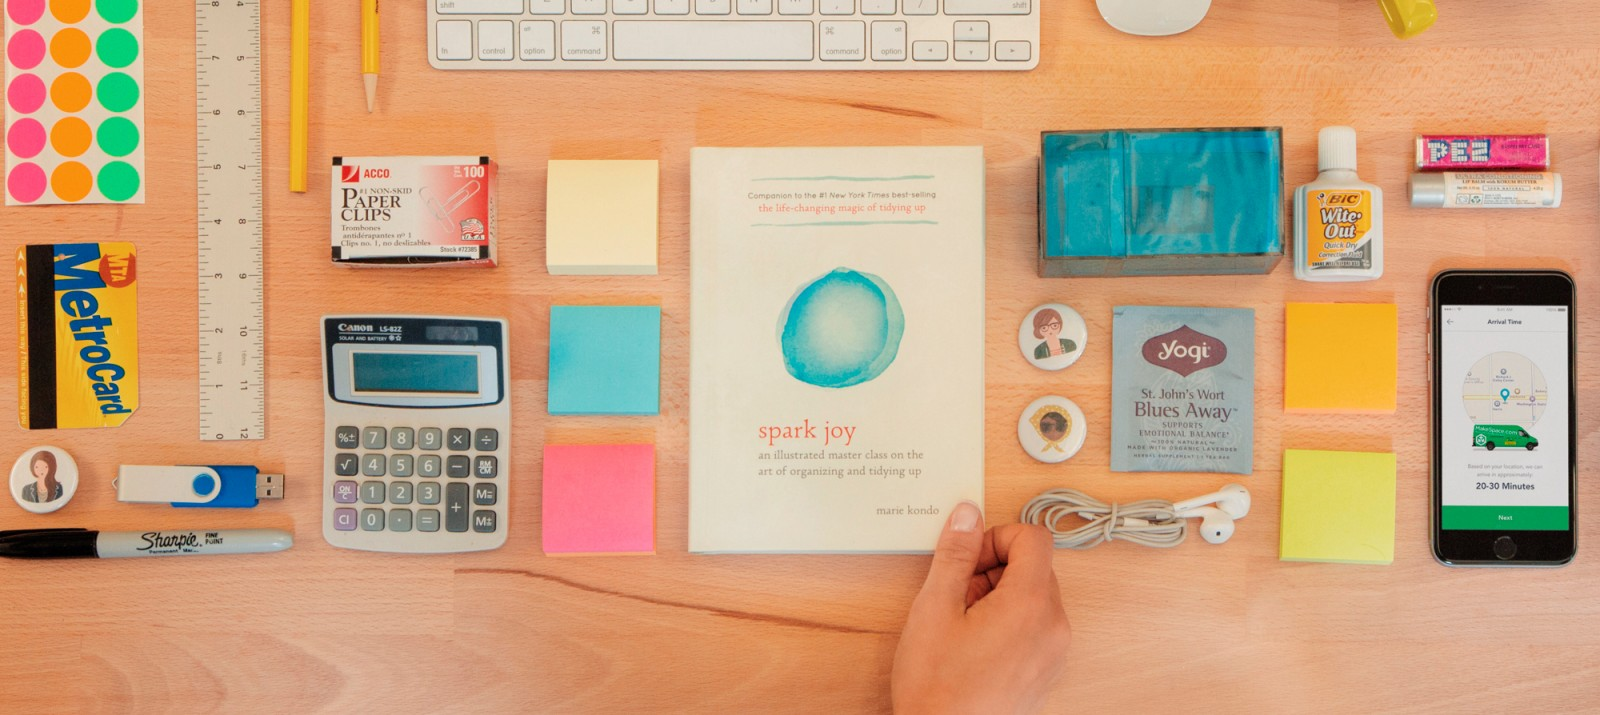 Marie Kondo's new book Spark Joy is on a desk that's organized neatly.